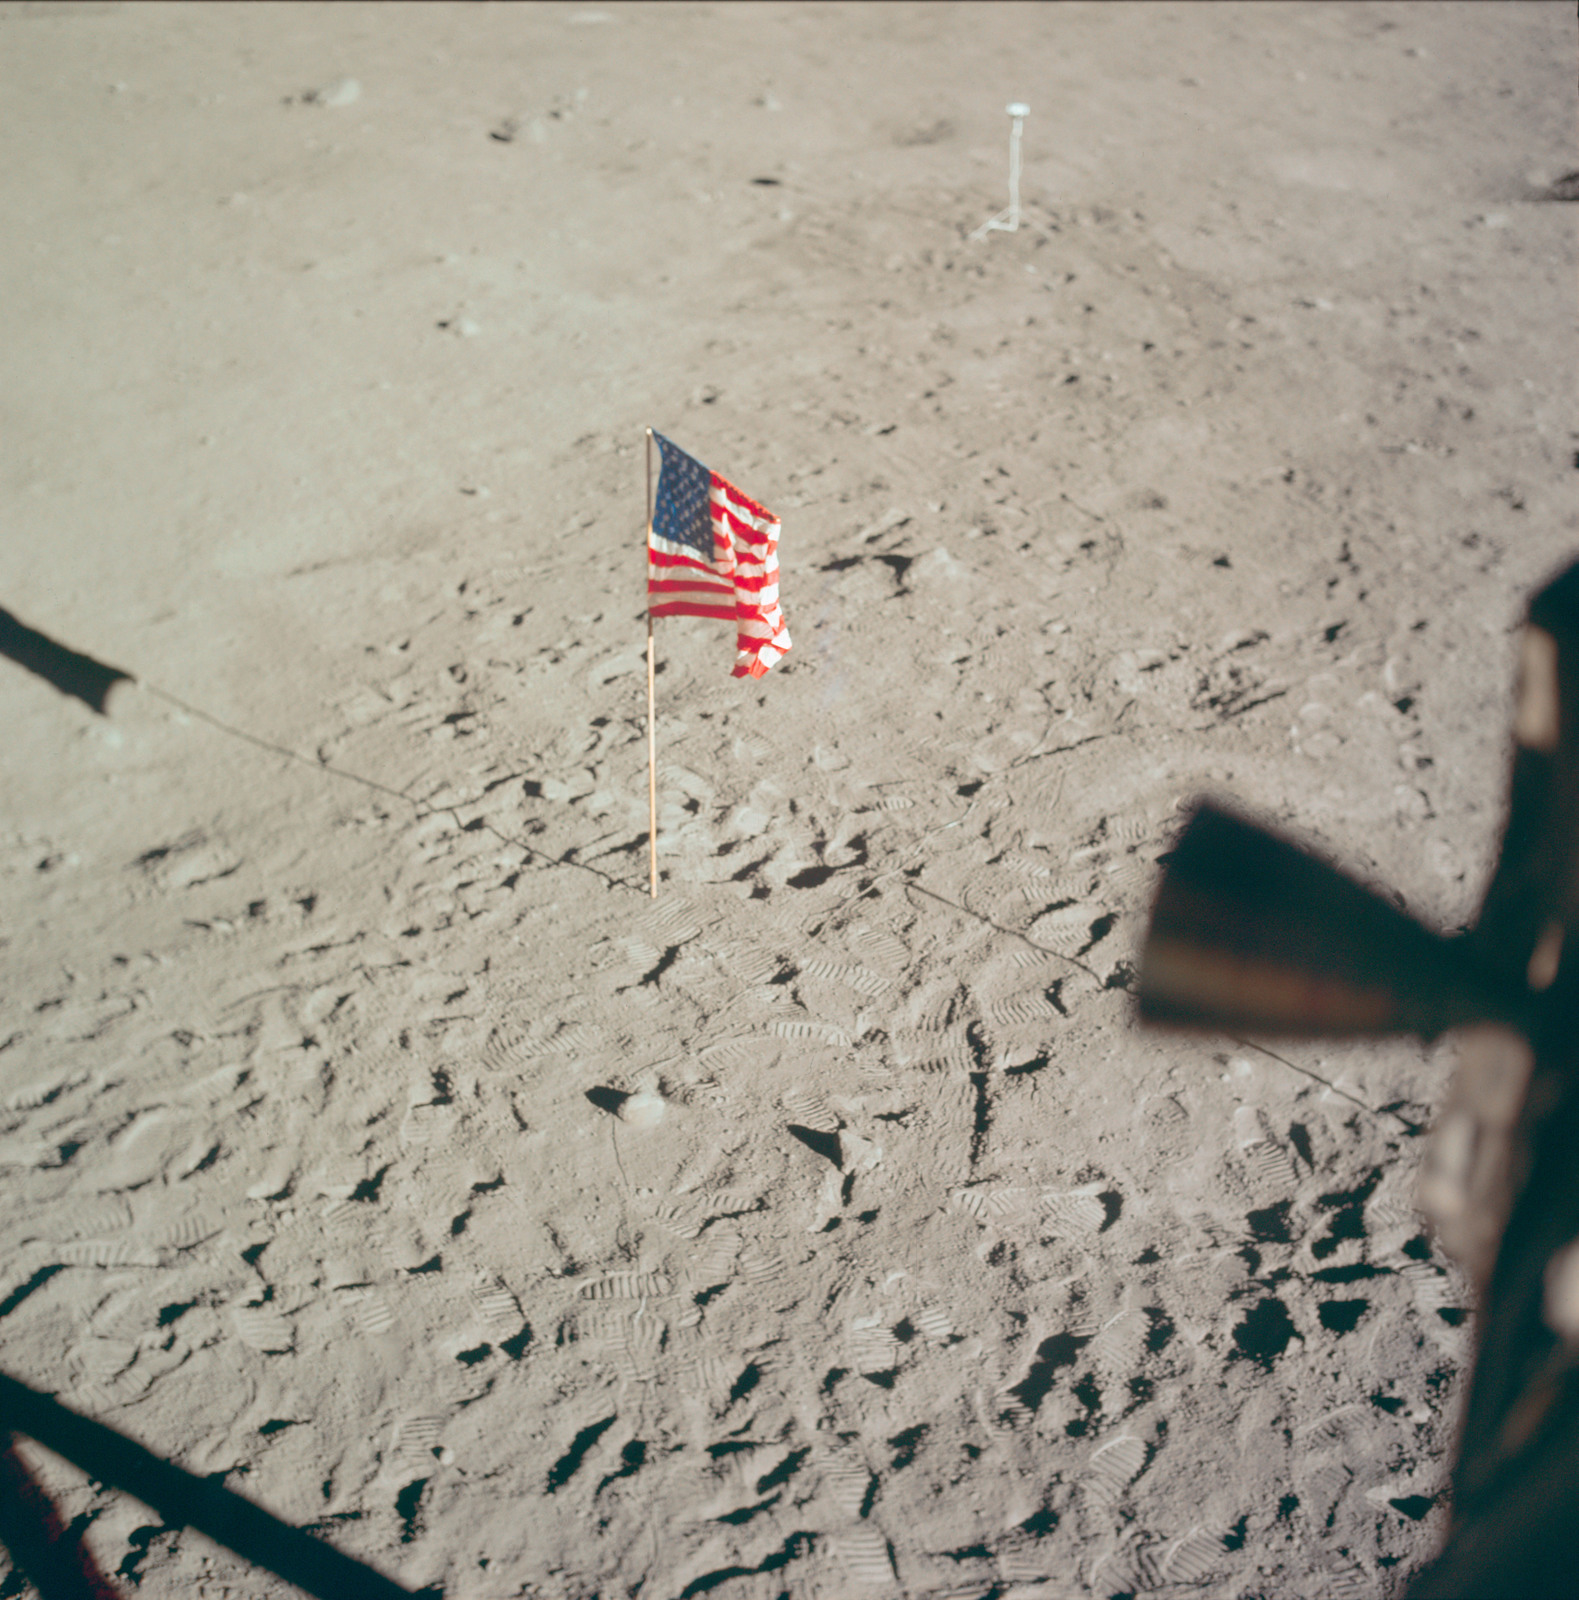 AS11-37-5545 - Apollo 11 - Apollo 11 Mission image - Lunar surface at Tranquility Base